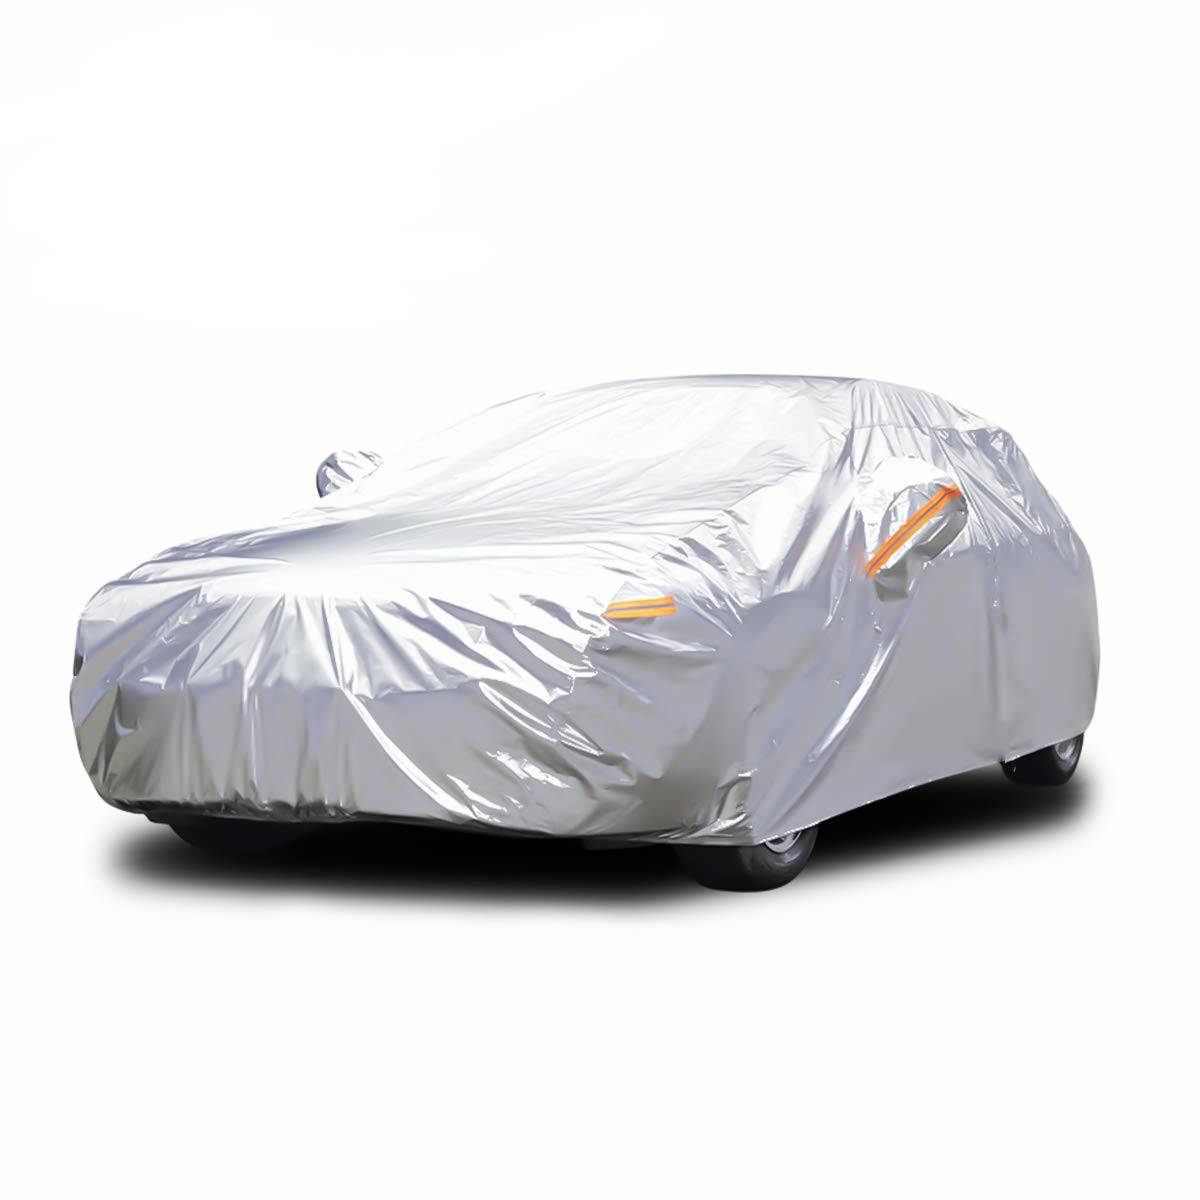 Audew 6 Layer Premium anti-UV Car Cover For Sedan, Mid-Size SUV Up To 190""